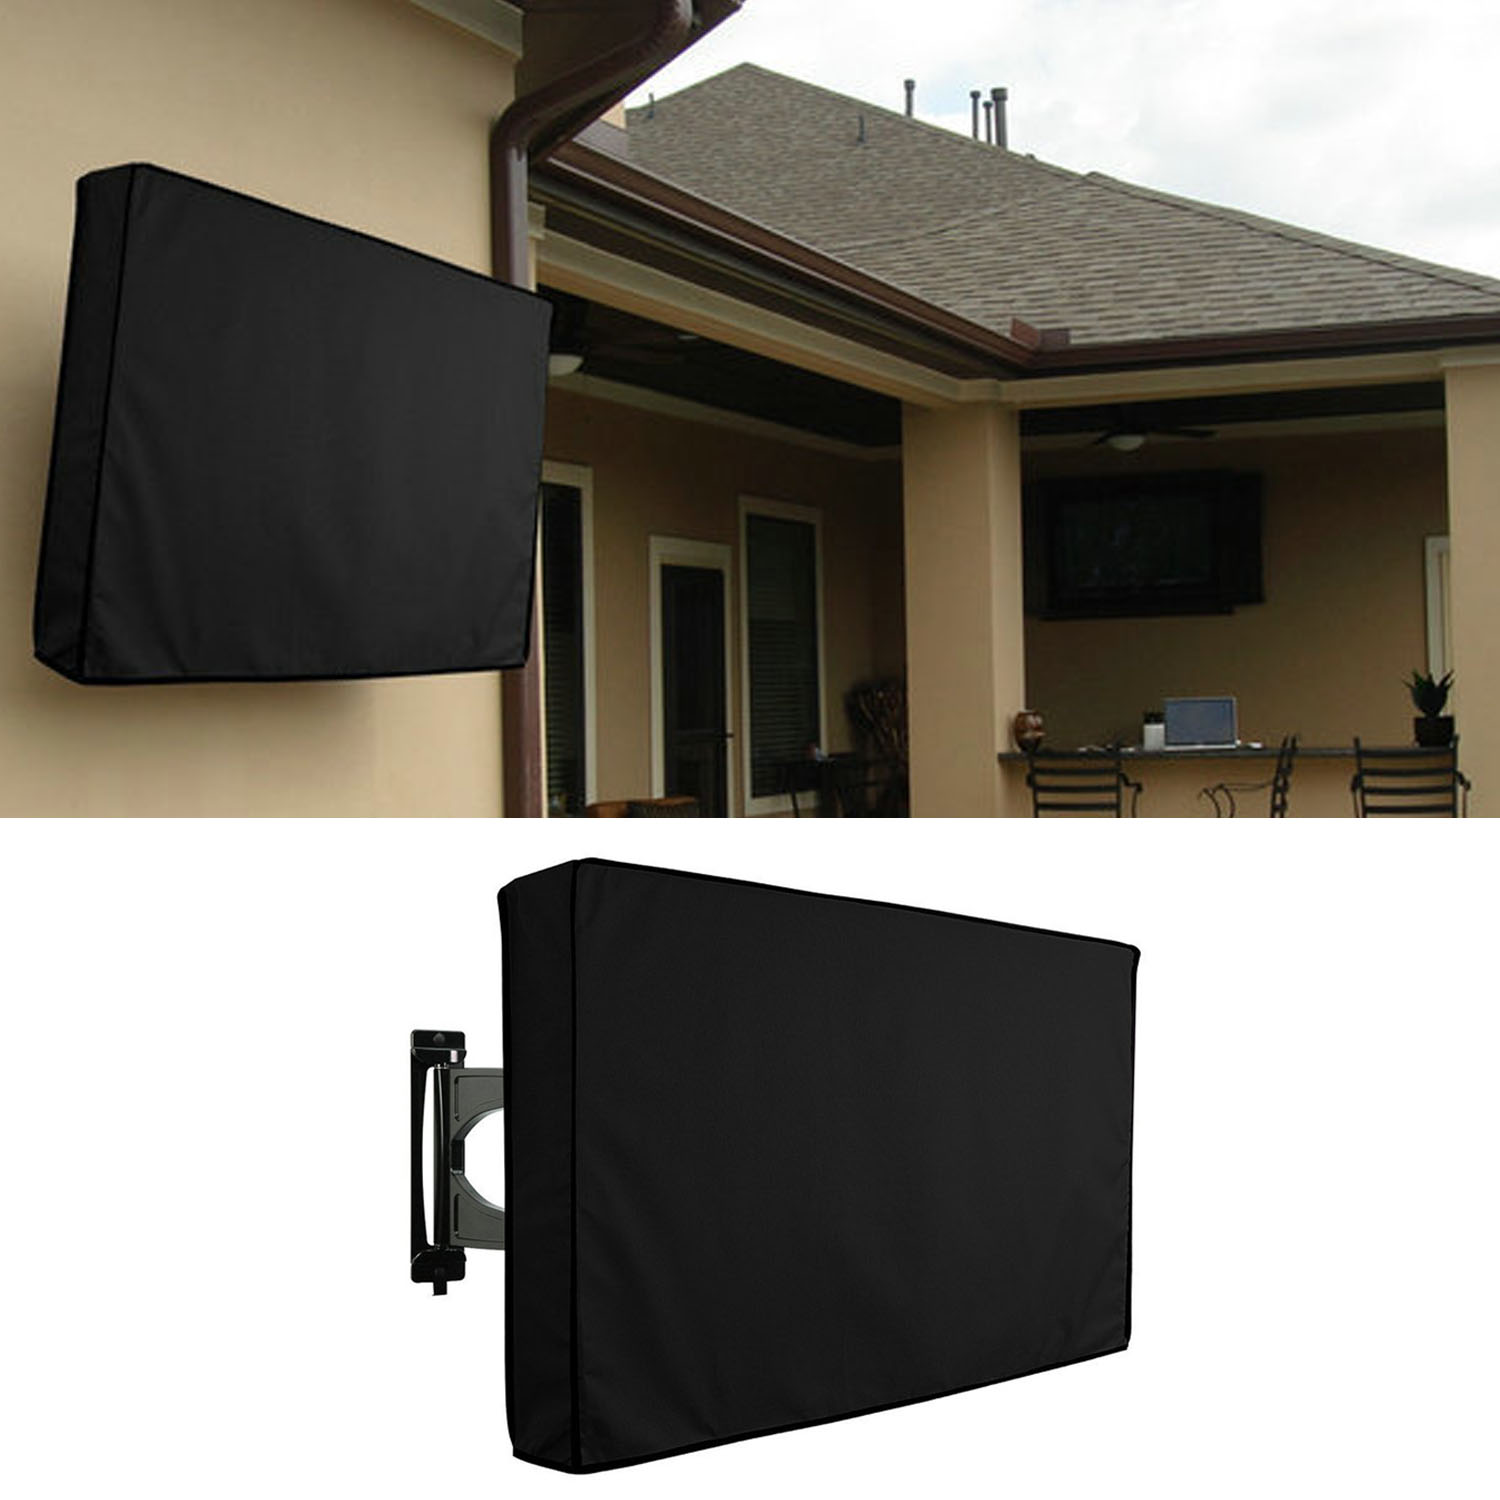 Outdoor Tv Cover Universal Waterproof Dustproof Oxford Cloth Led Hdtv Protector For 30 32 Inch Television